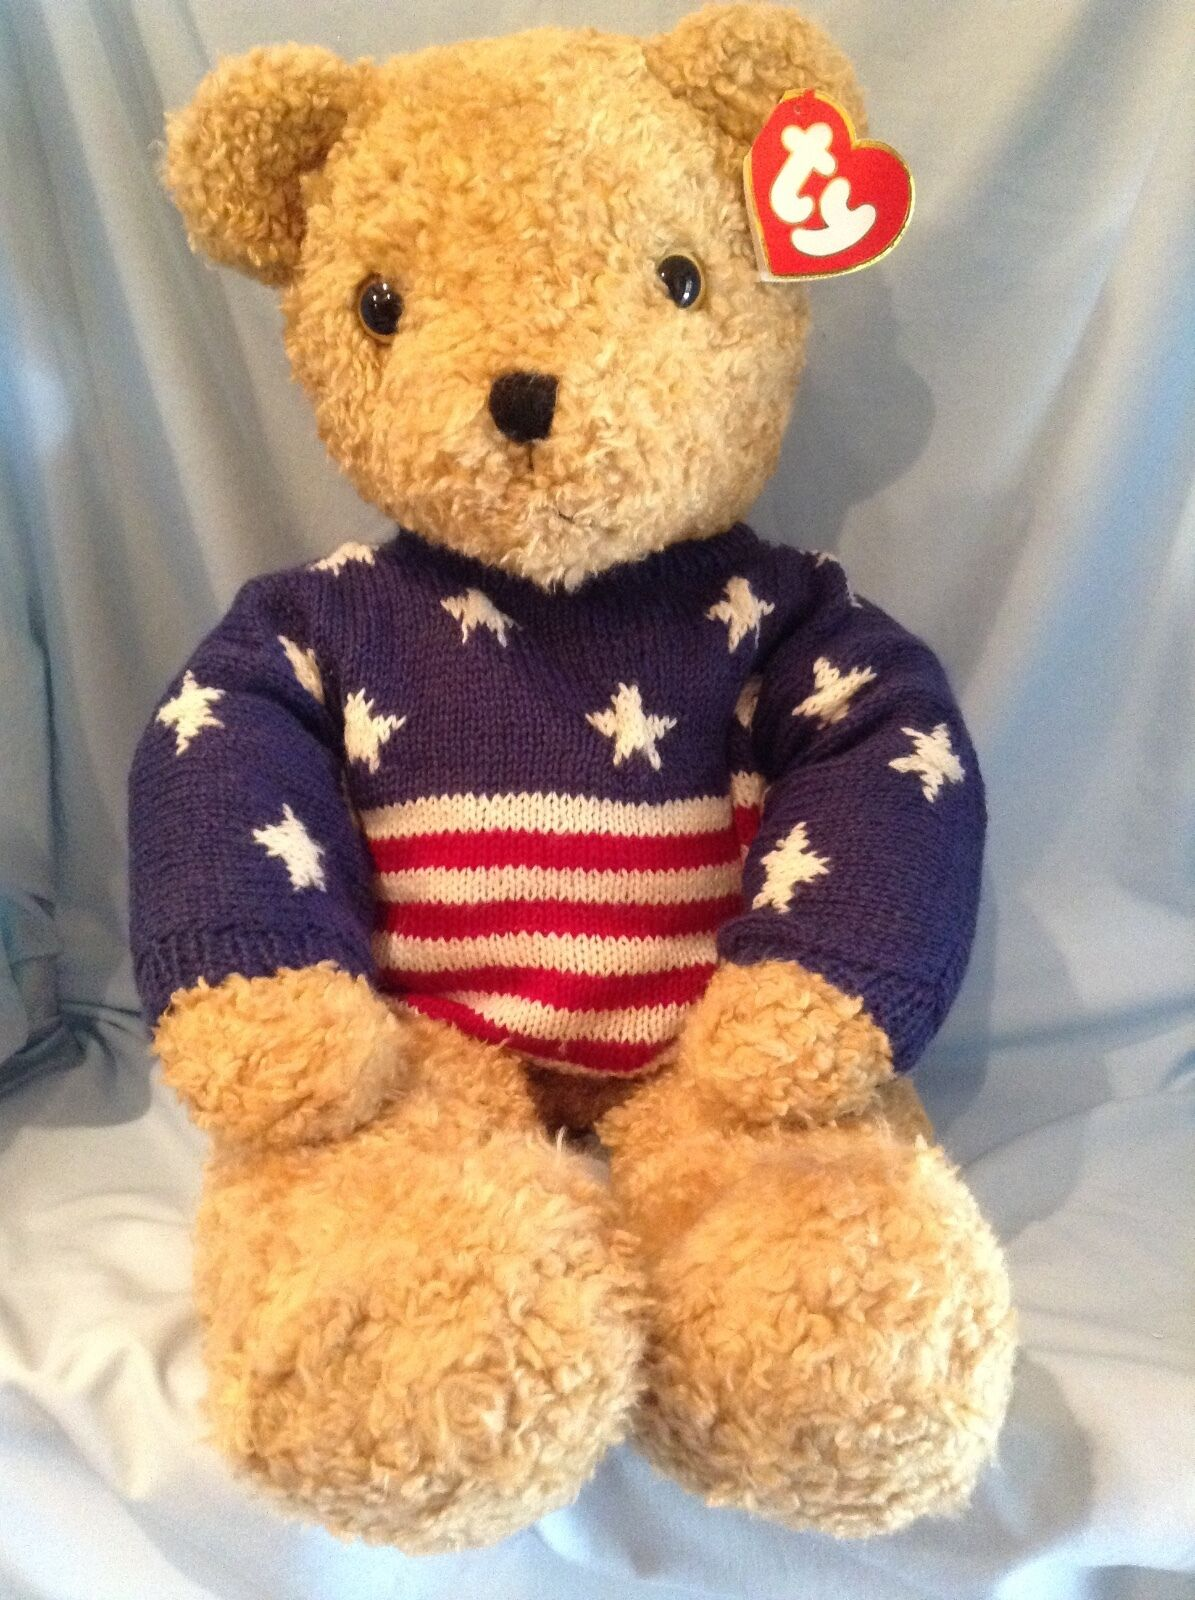 Ty Lg. Curly gold Bear Stars and Stripes Sweater 9019 P.E. Pellets 1991  42.00